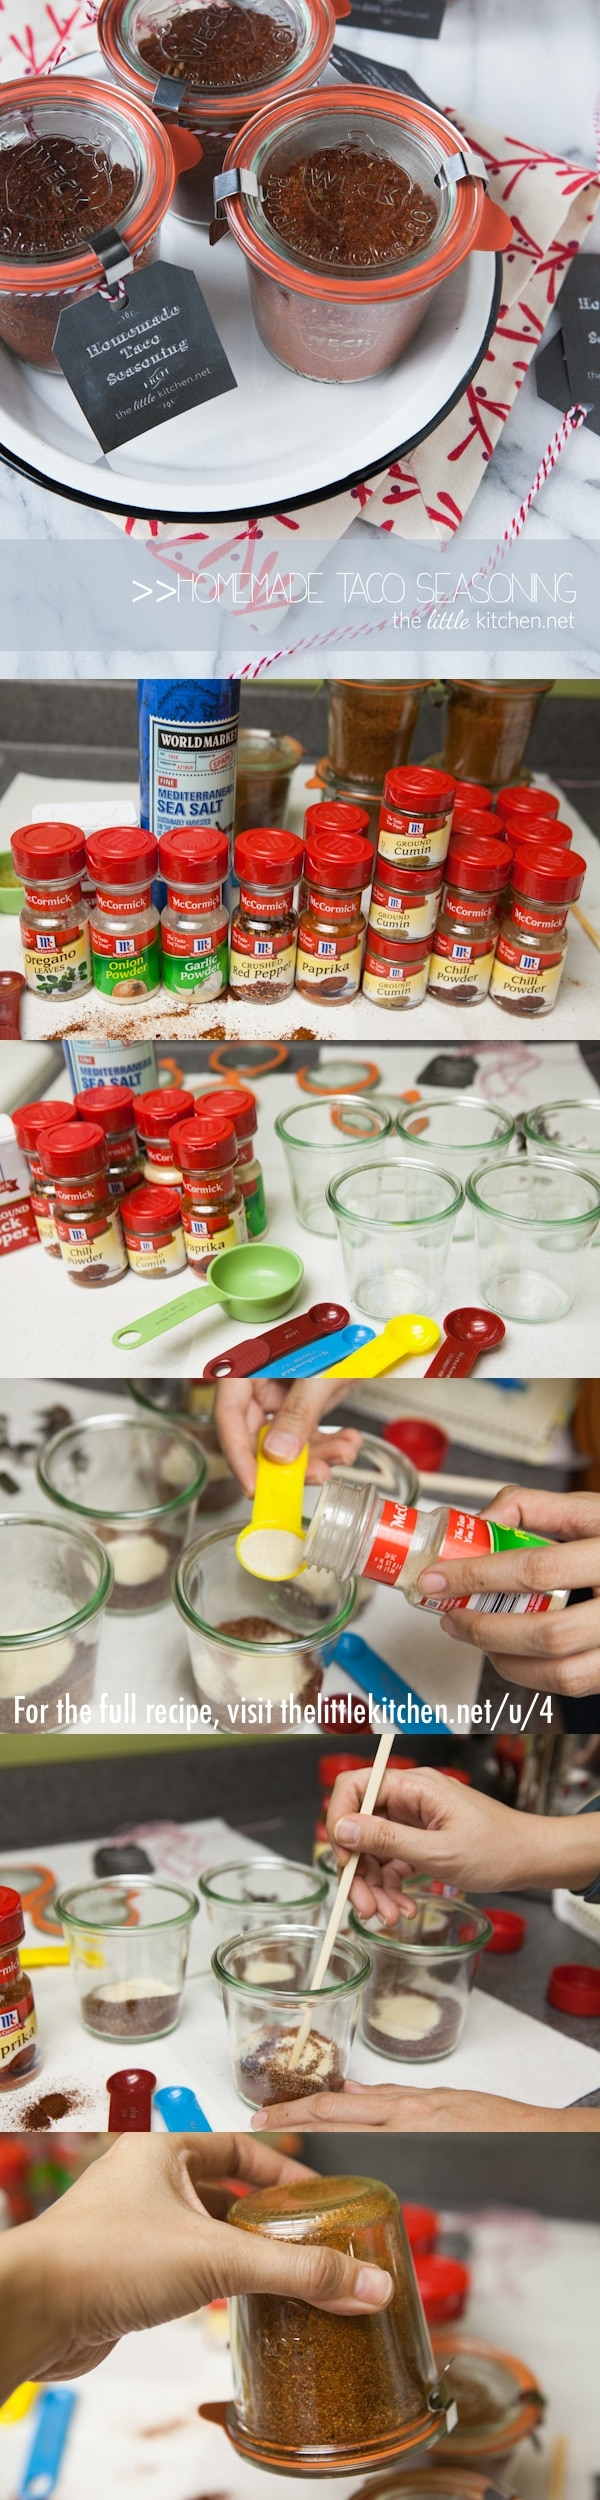 {makes a great gift!} Homemade Taco Seasoning thelittlekitchen.net